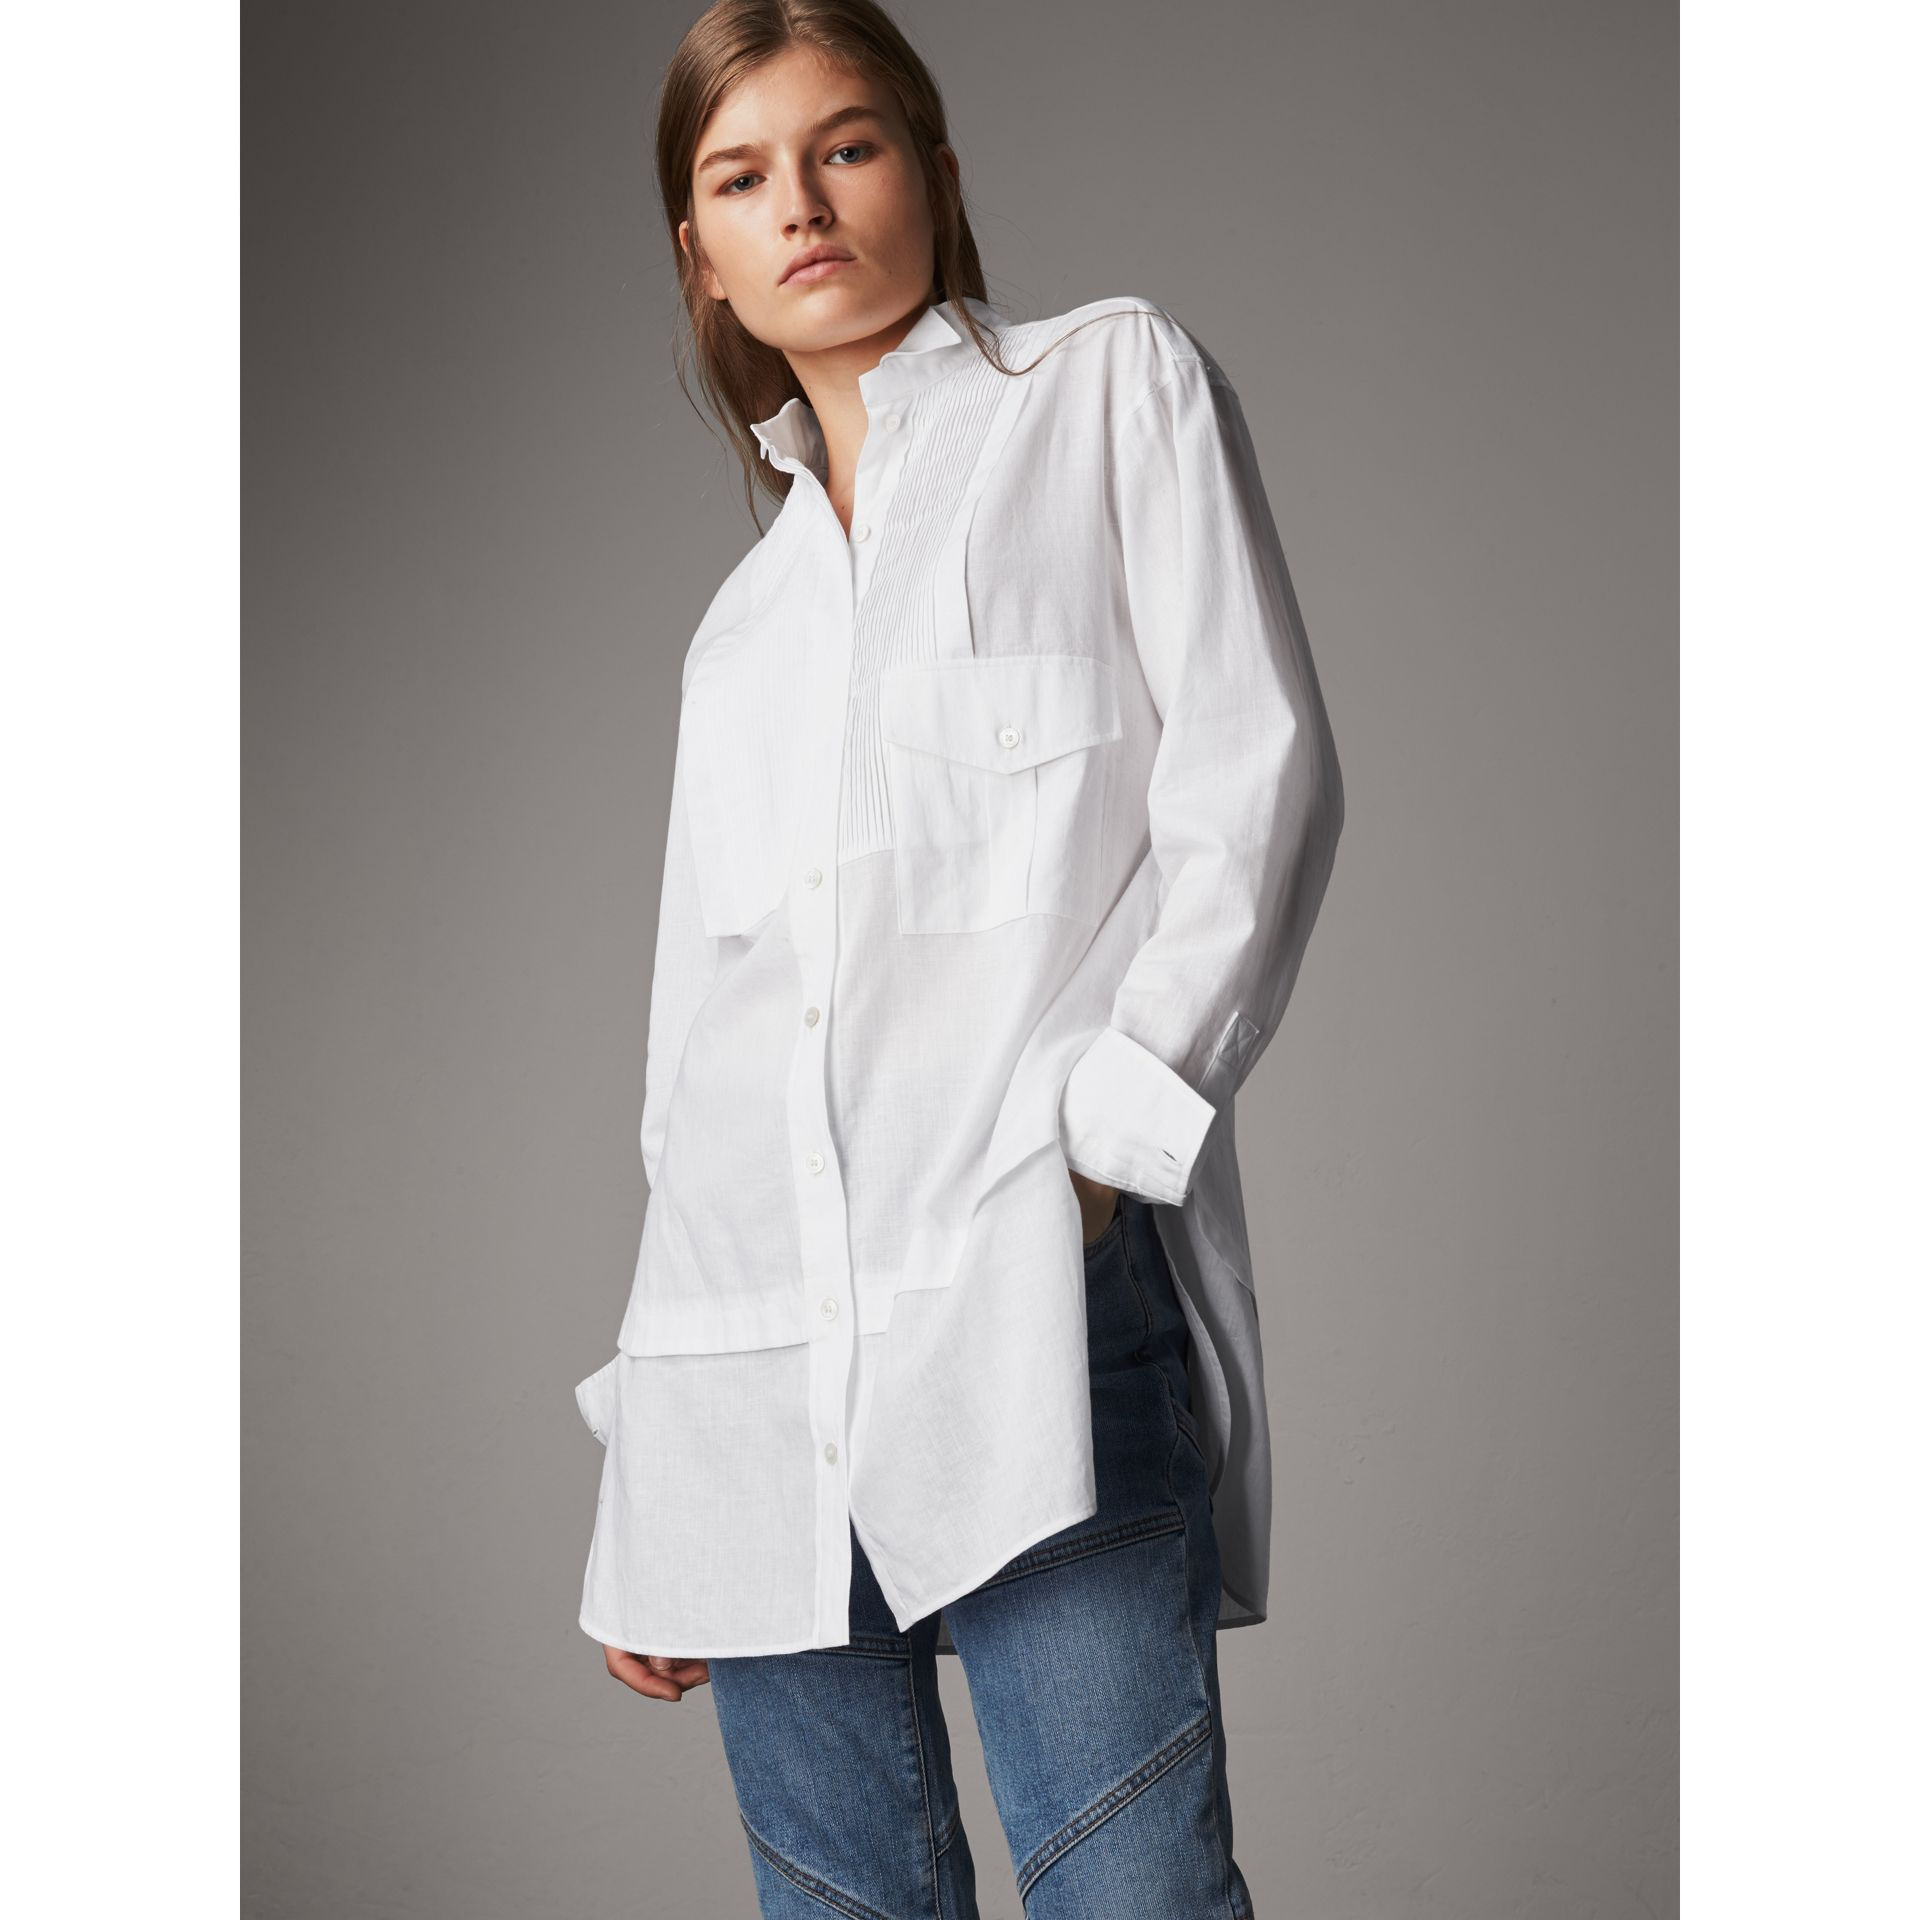 Pintuck Bib Wing Collar Longline Linen Cotton Shirt in White - Women | Burberry Australia - gallery image 1